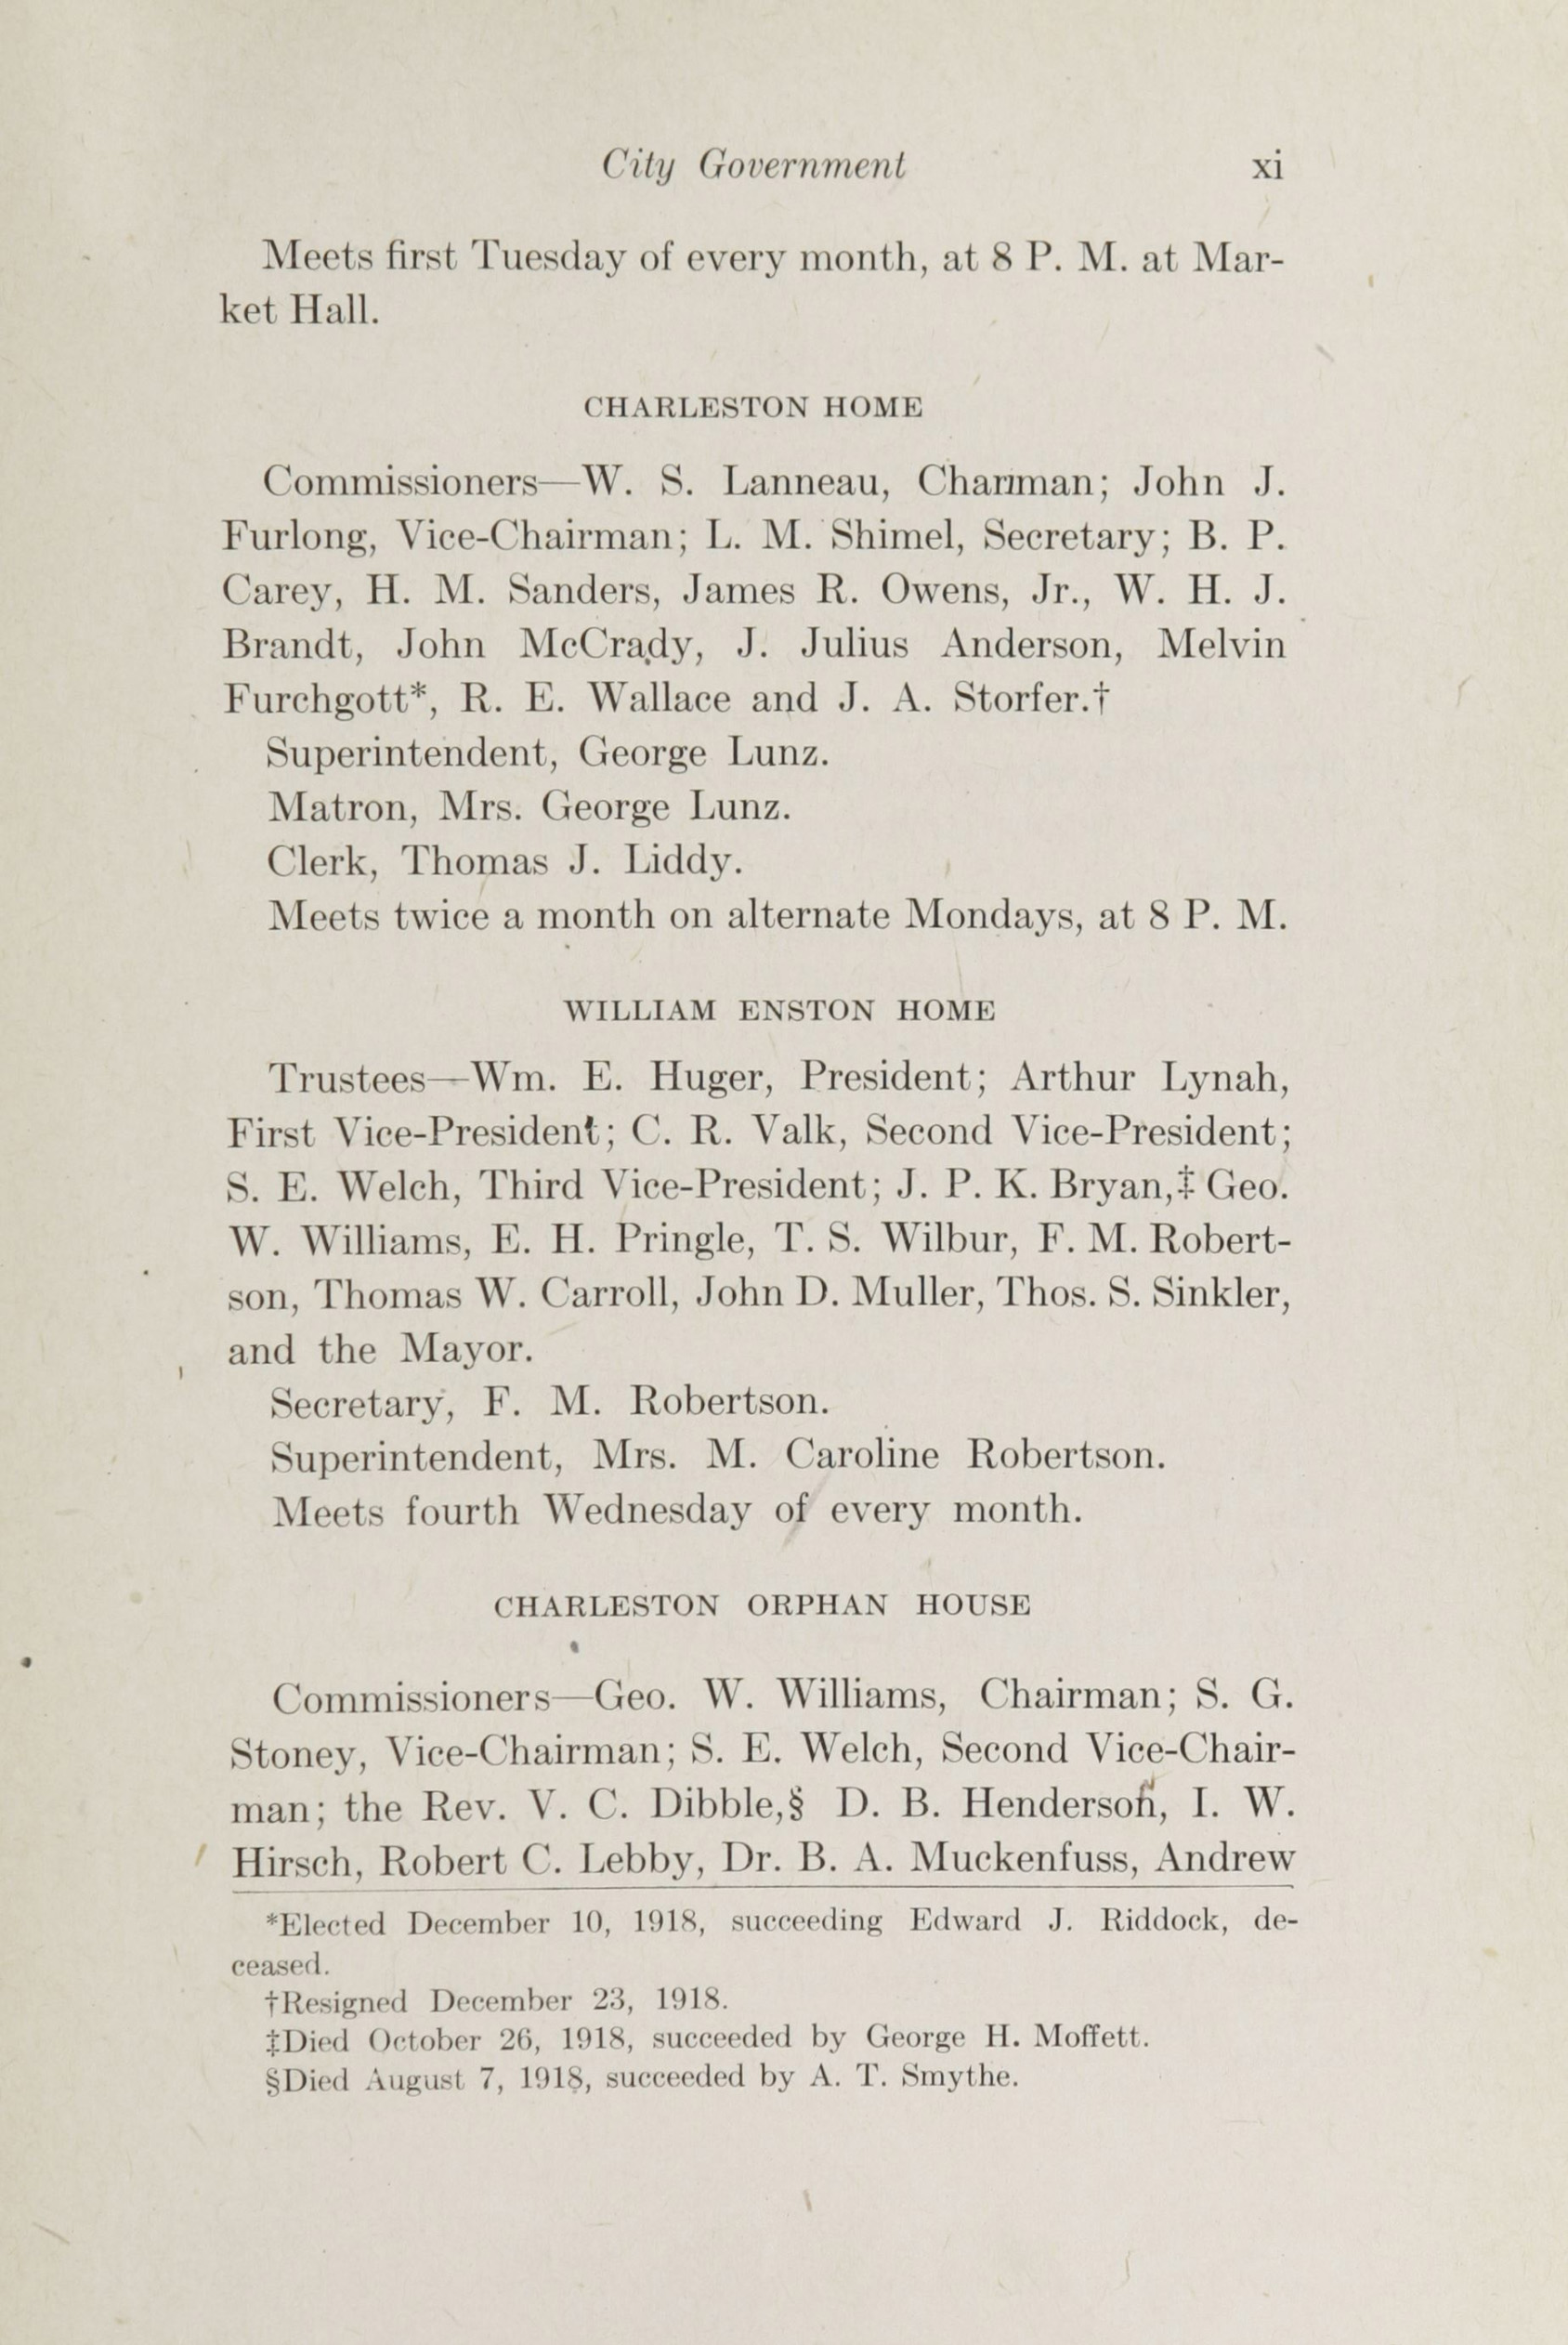 Charleston Yearbook, 1918, page xi